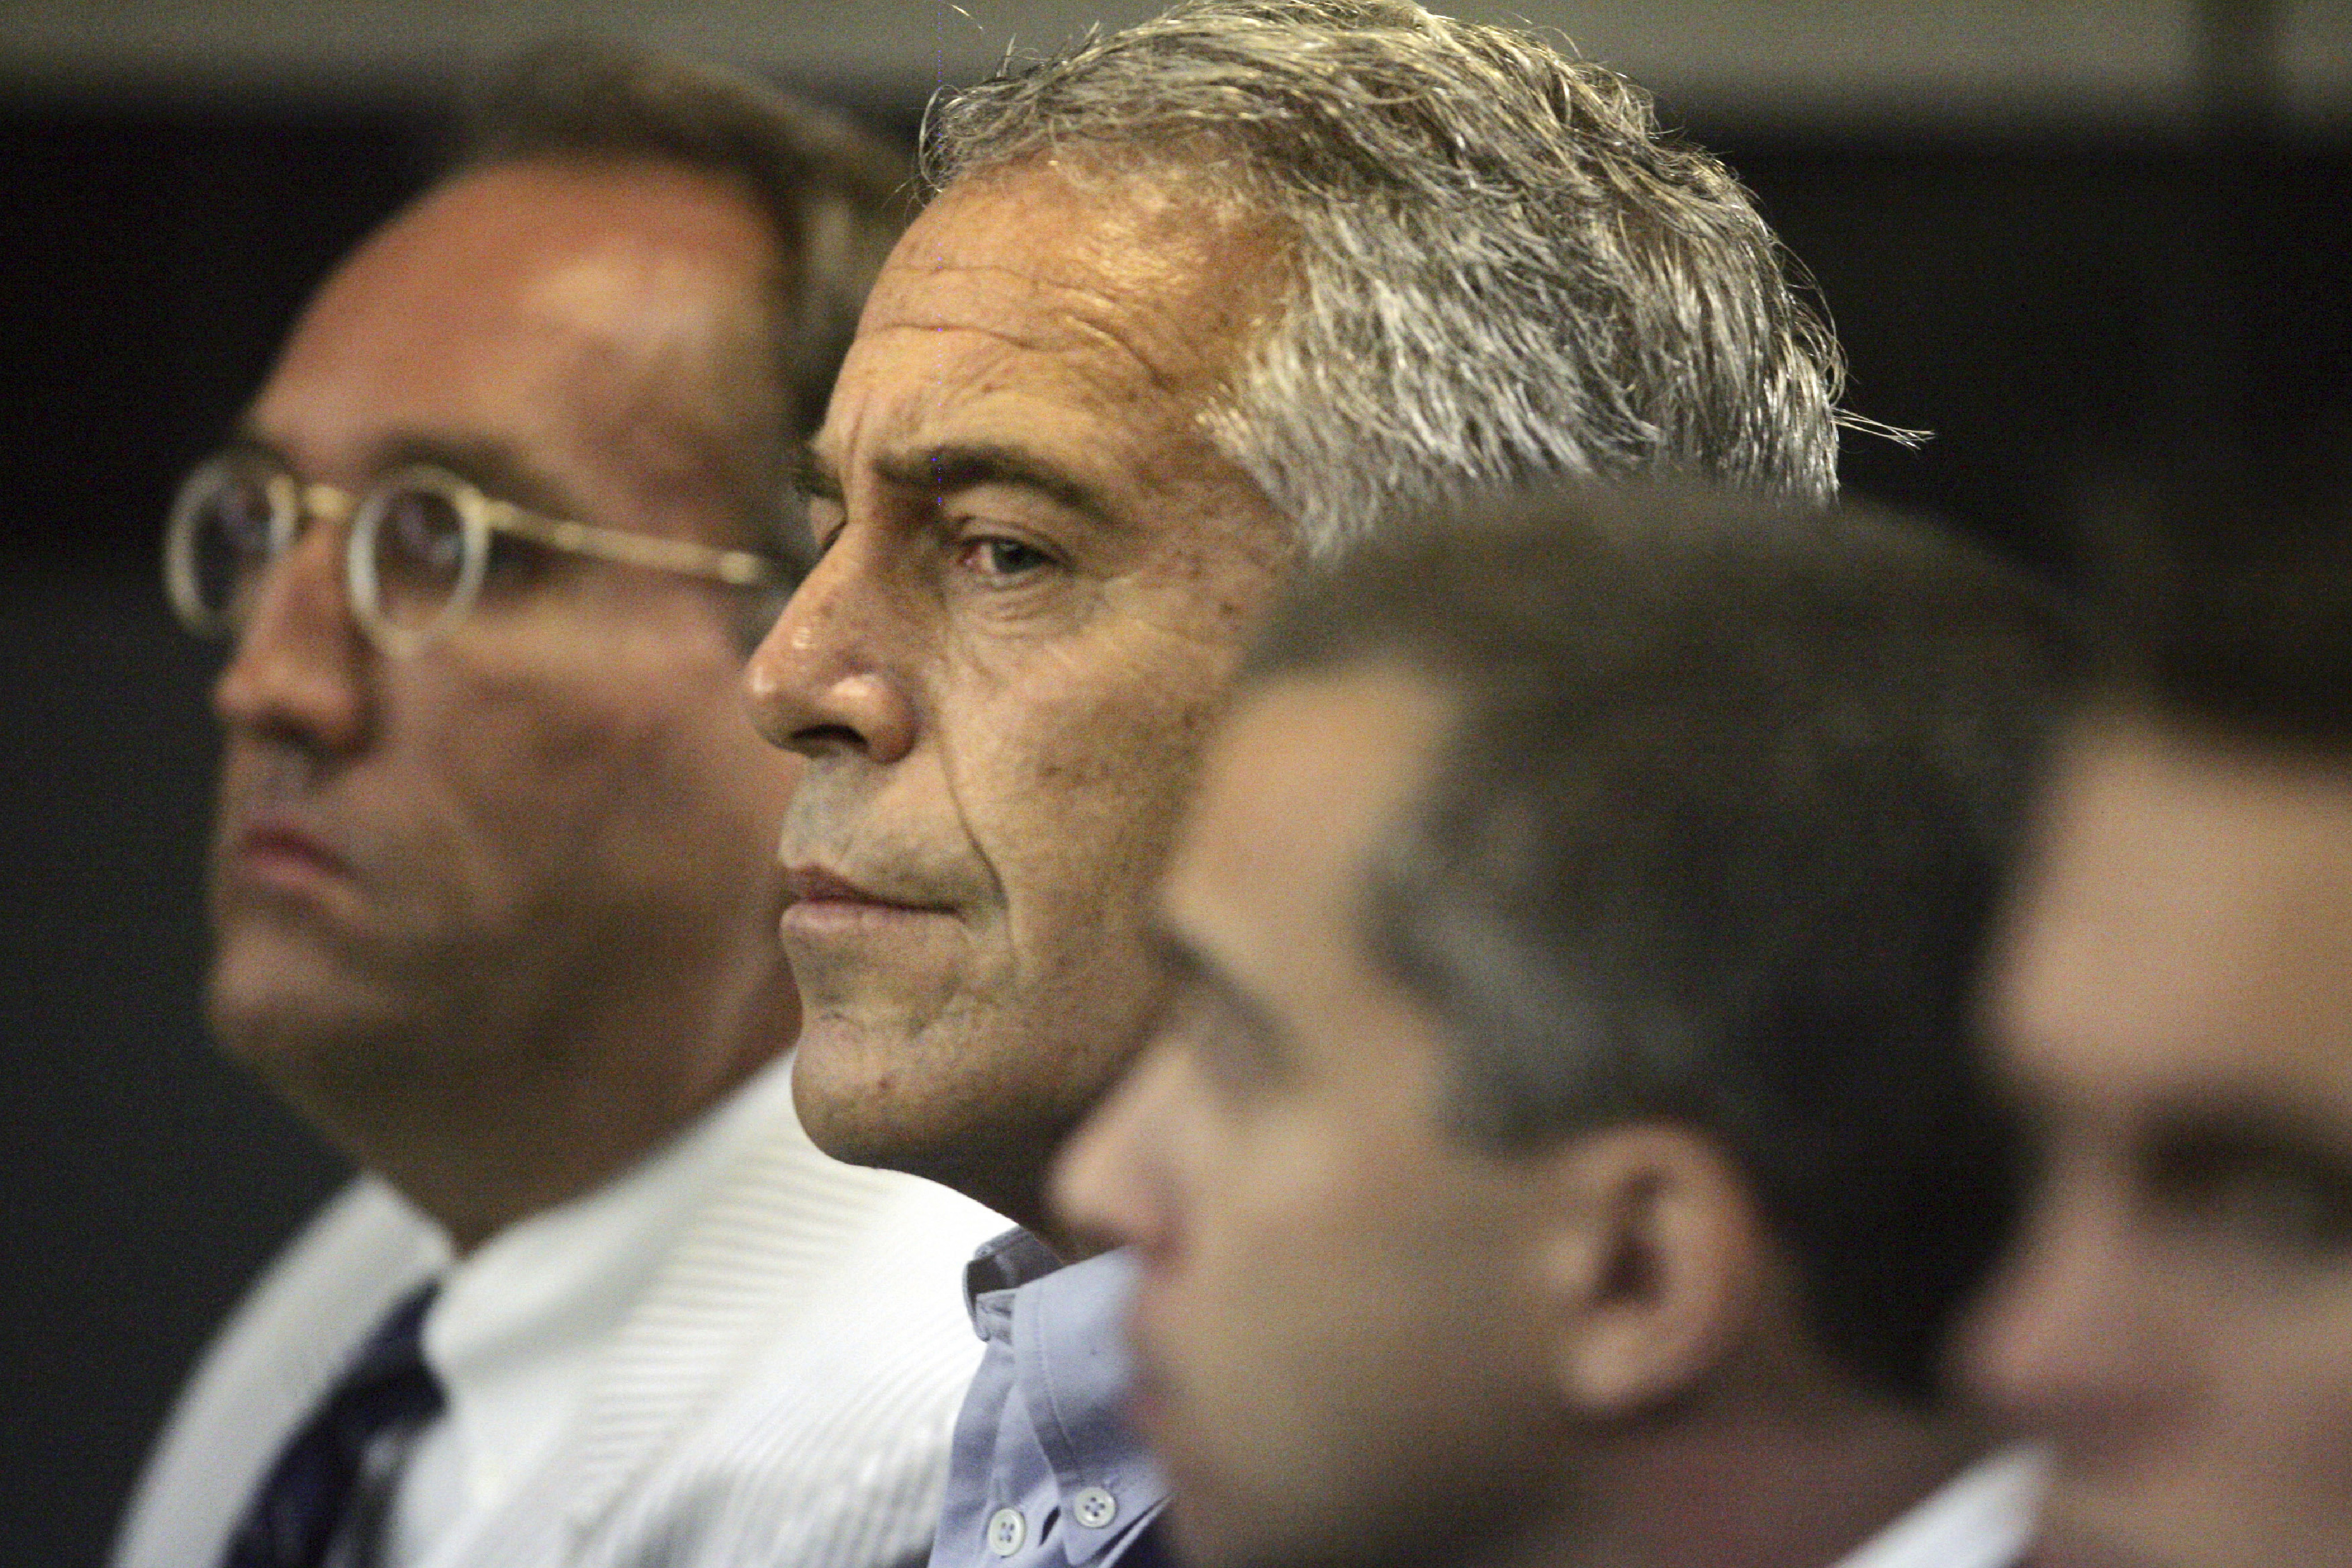 In this July 30, 2008 file photo, Jeffrey Epstein, center, appears in court in West Palm Beach, Fla. The wealthy financier pleaded not guilty in federal court in New York on Monday, July 8, 2019, to sex trafficking charges following his arrest over the weekend. Epstein will have to remain behind bars until his bail hearing on July 15.